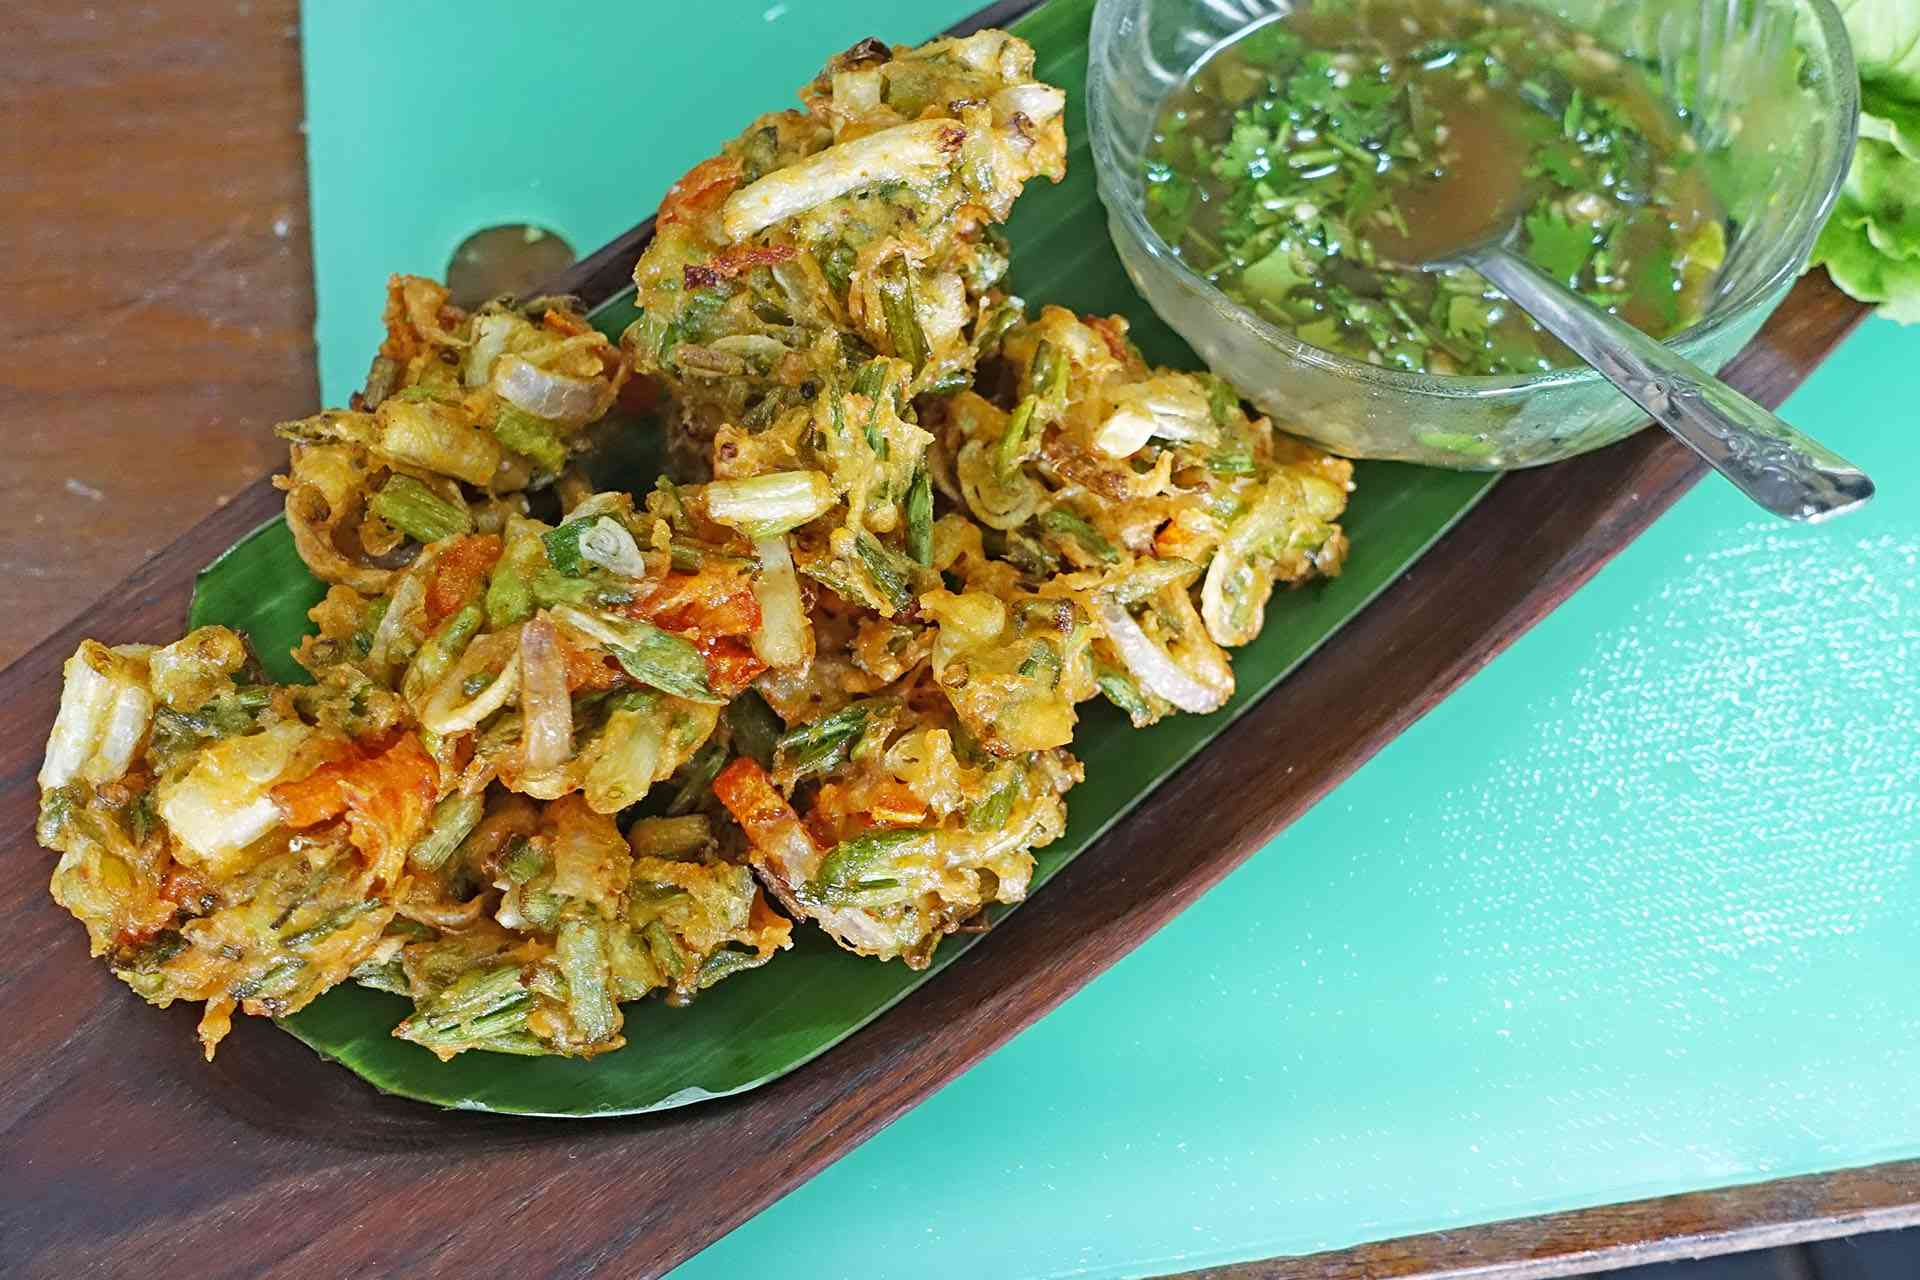 plate of A kyaw sone (fried vegetable fritters)